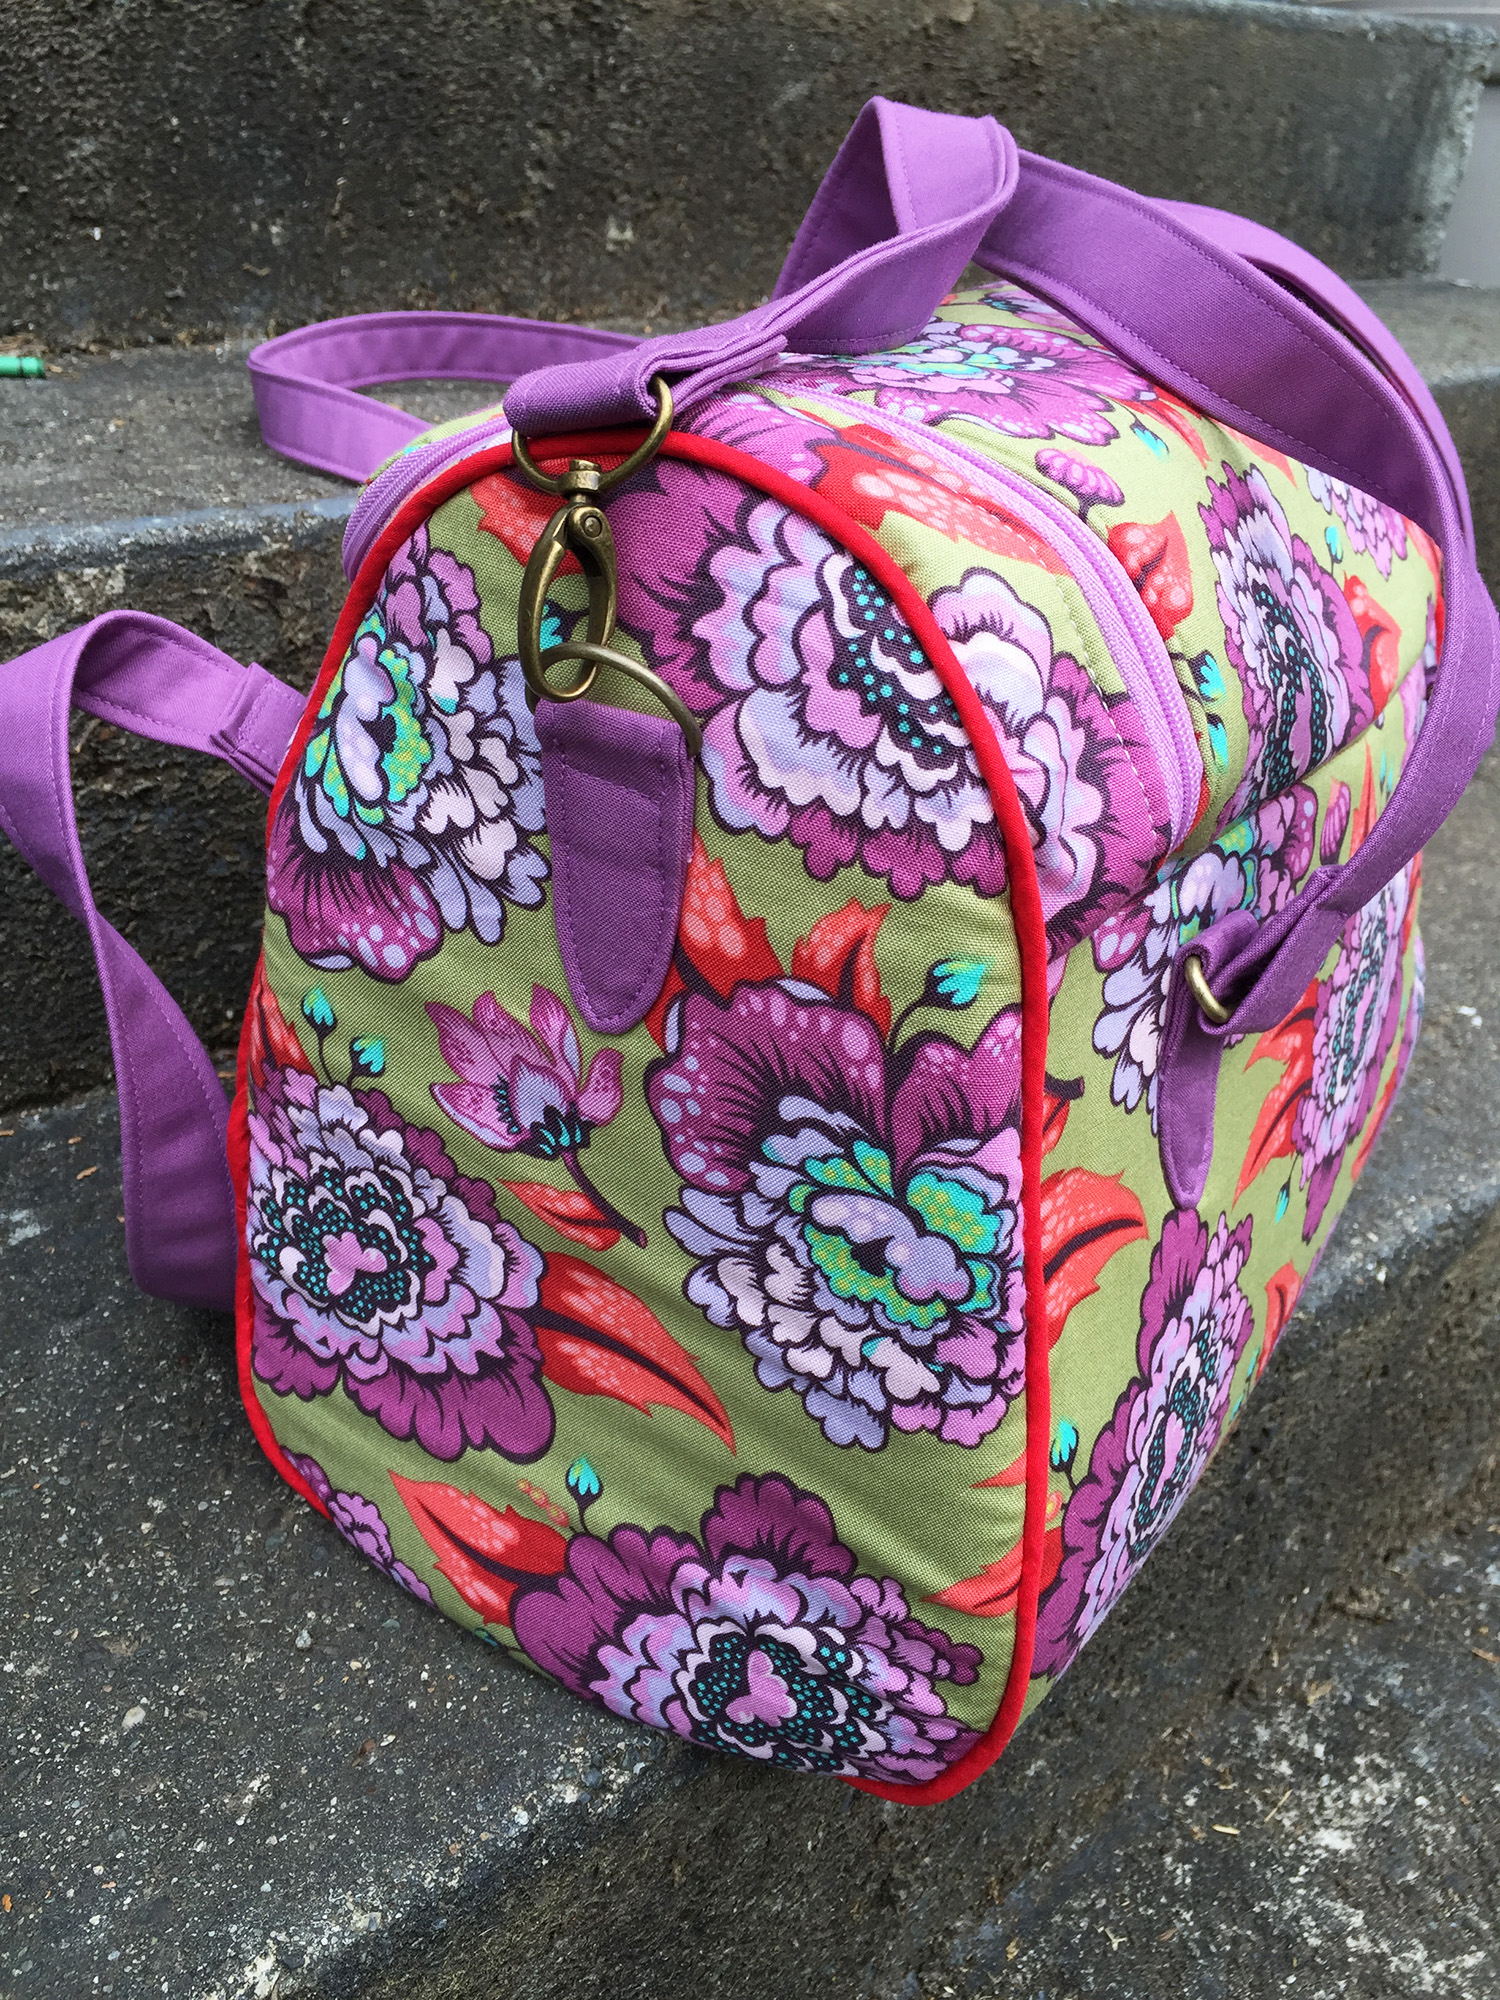 Sew Sweetness Tortoise Bag sewing pattern, sewn by Reece